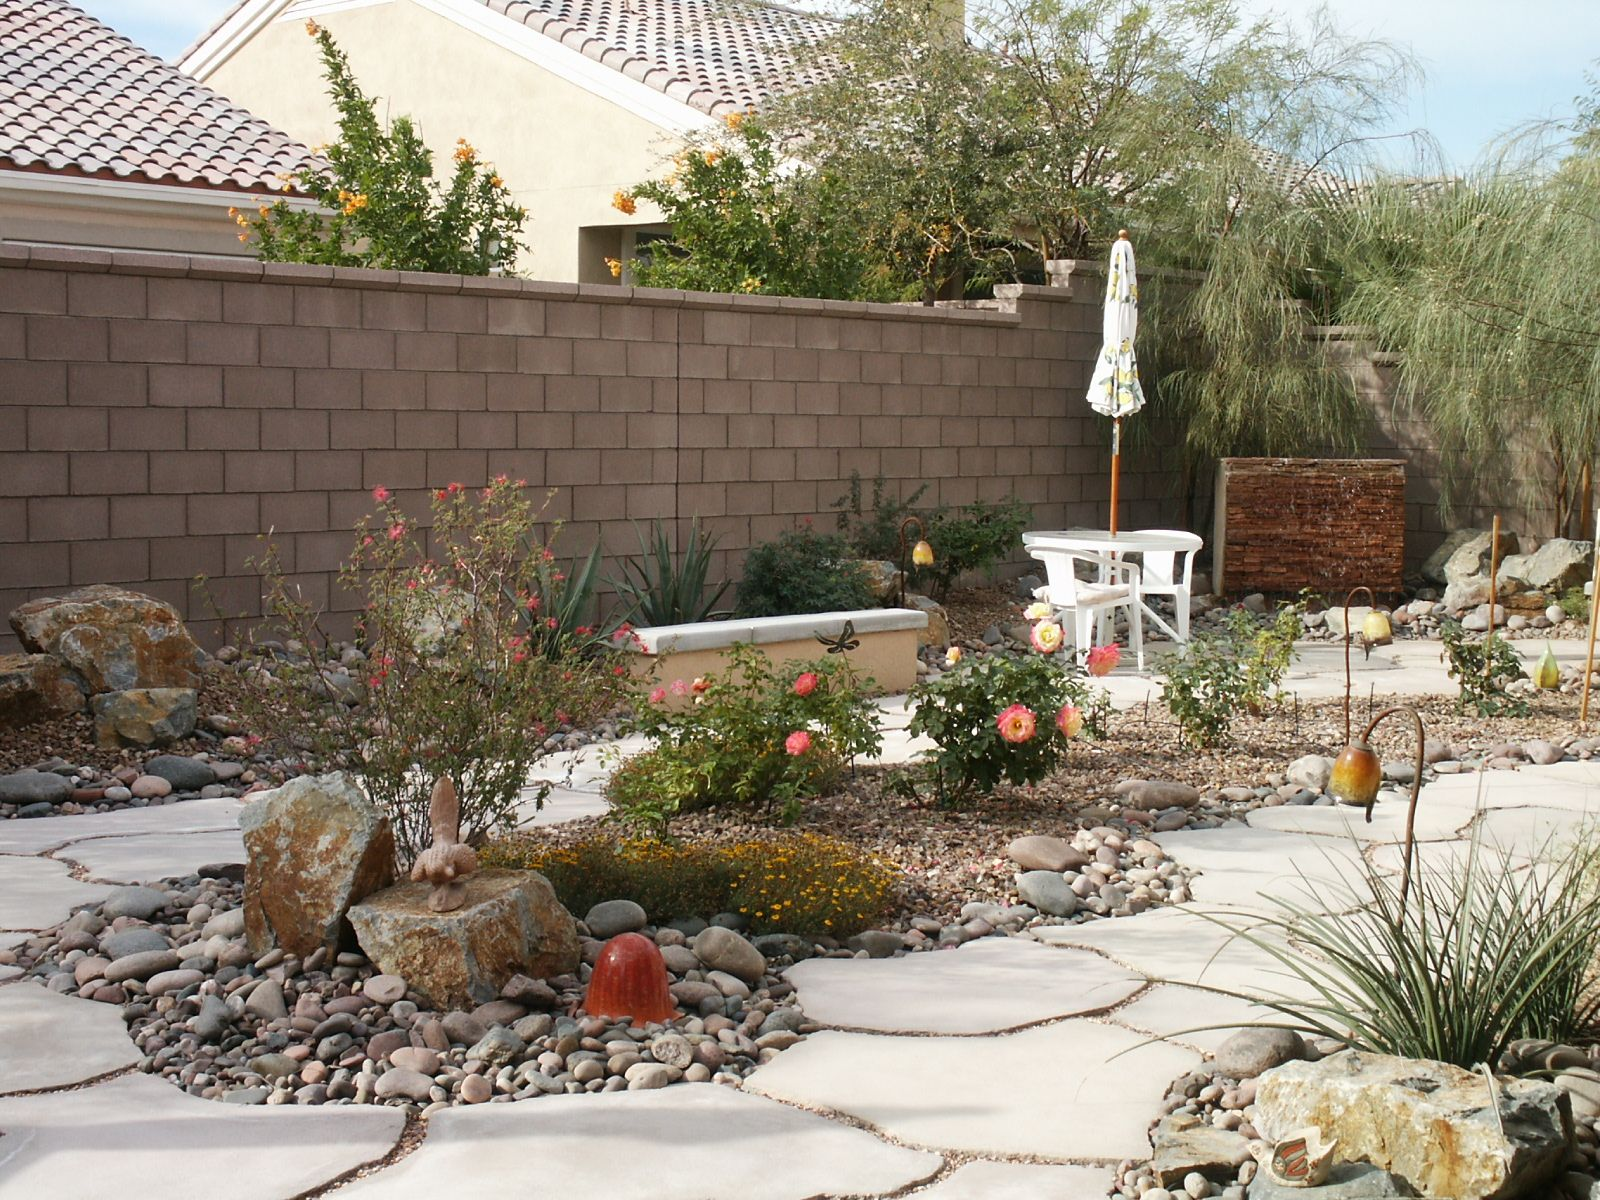 Desert Landscaping Rocks For Garden | Desert Corner in Your Garden ...